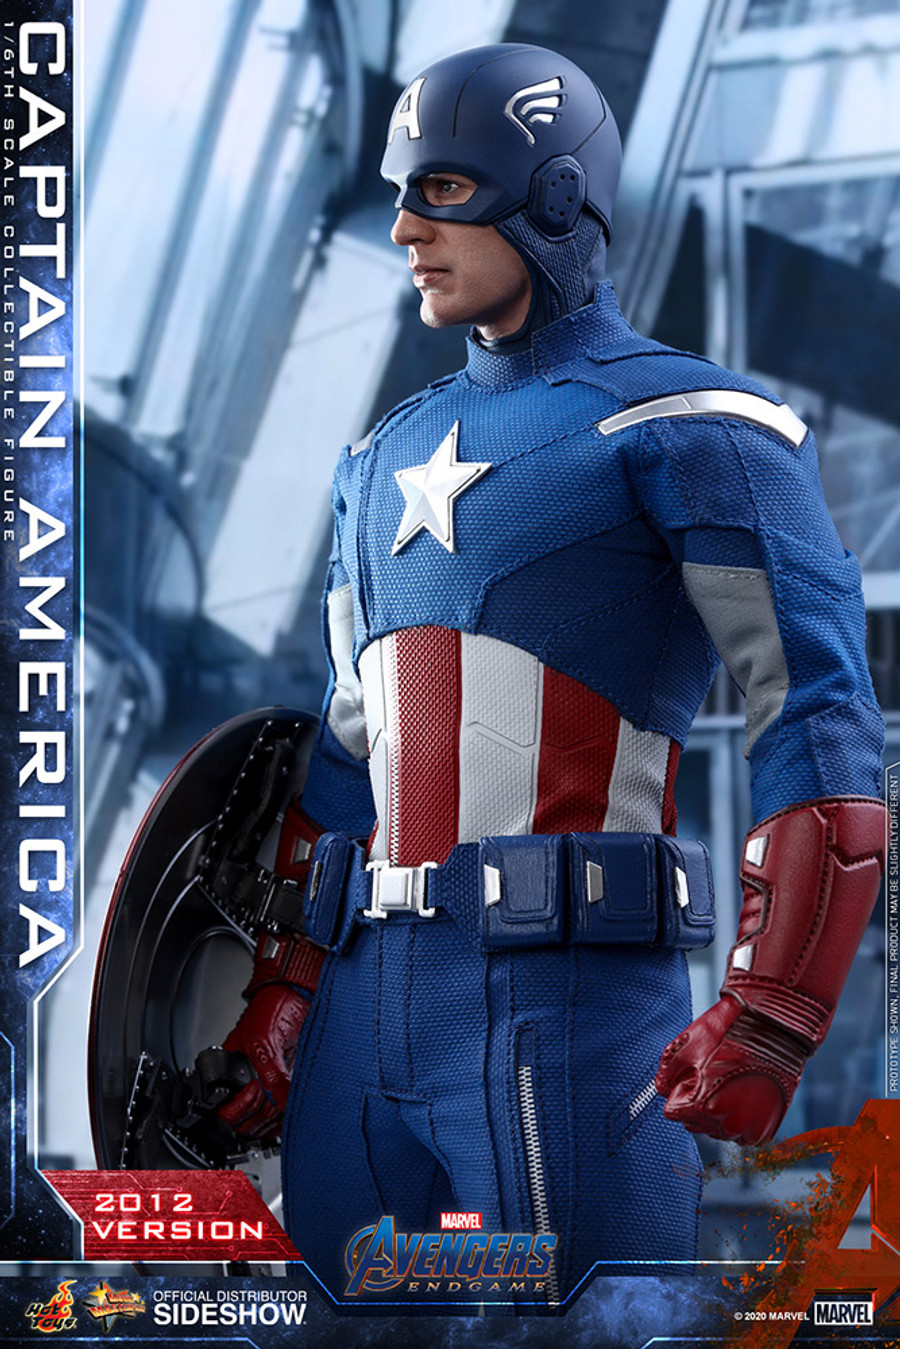 Hot Toys - Captain America 2012 Version